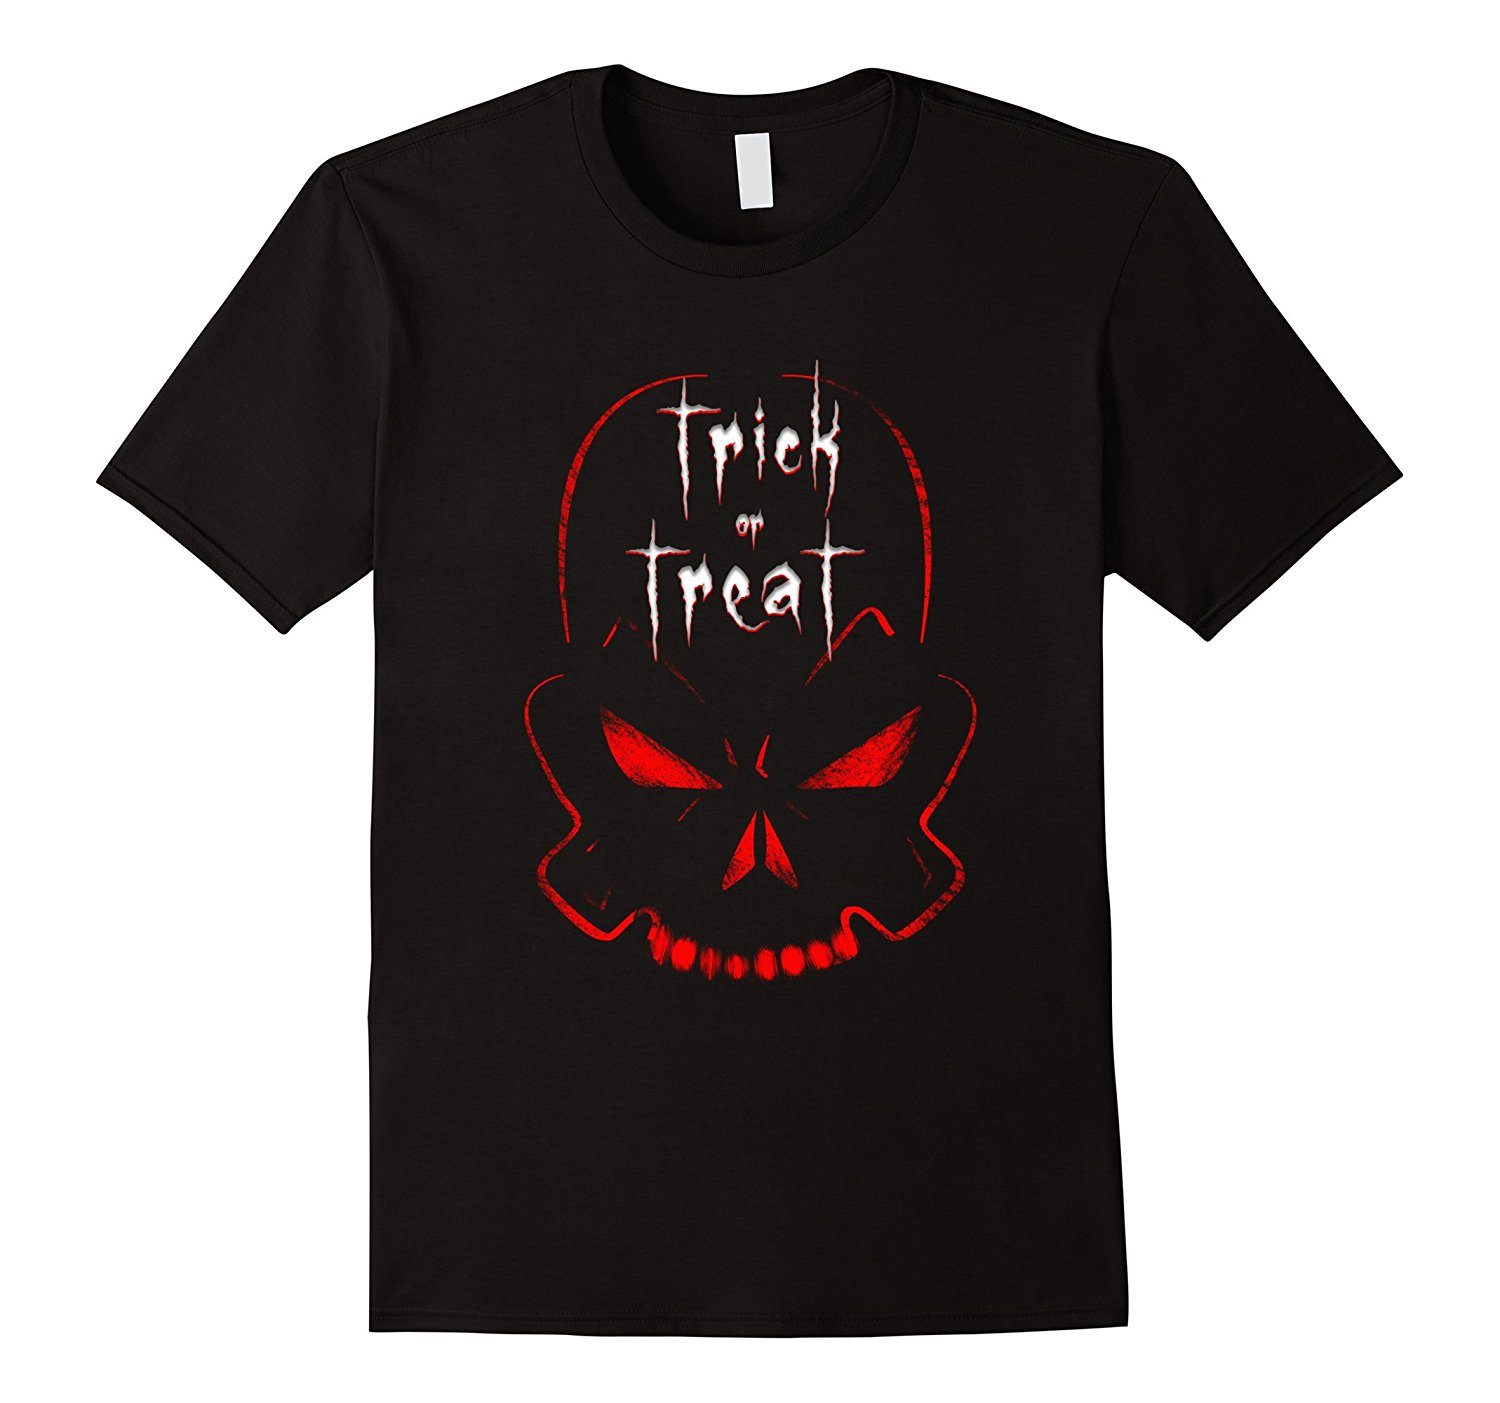 Halloween shirt with Trick or Treat Scary Skull